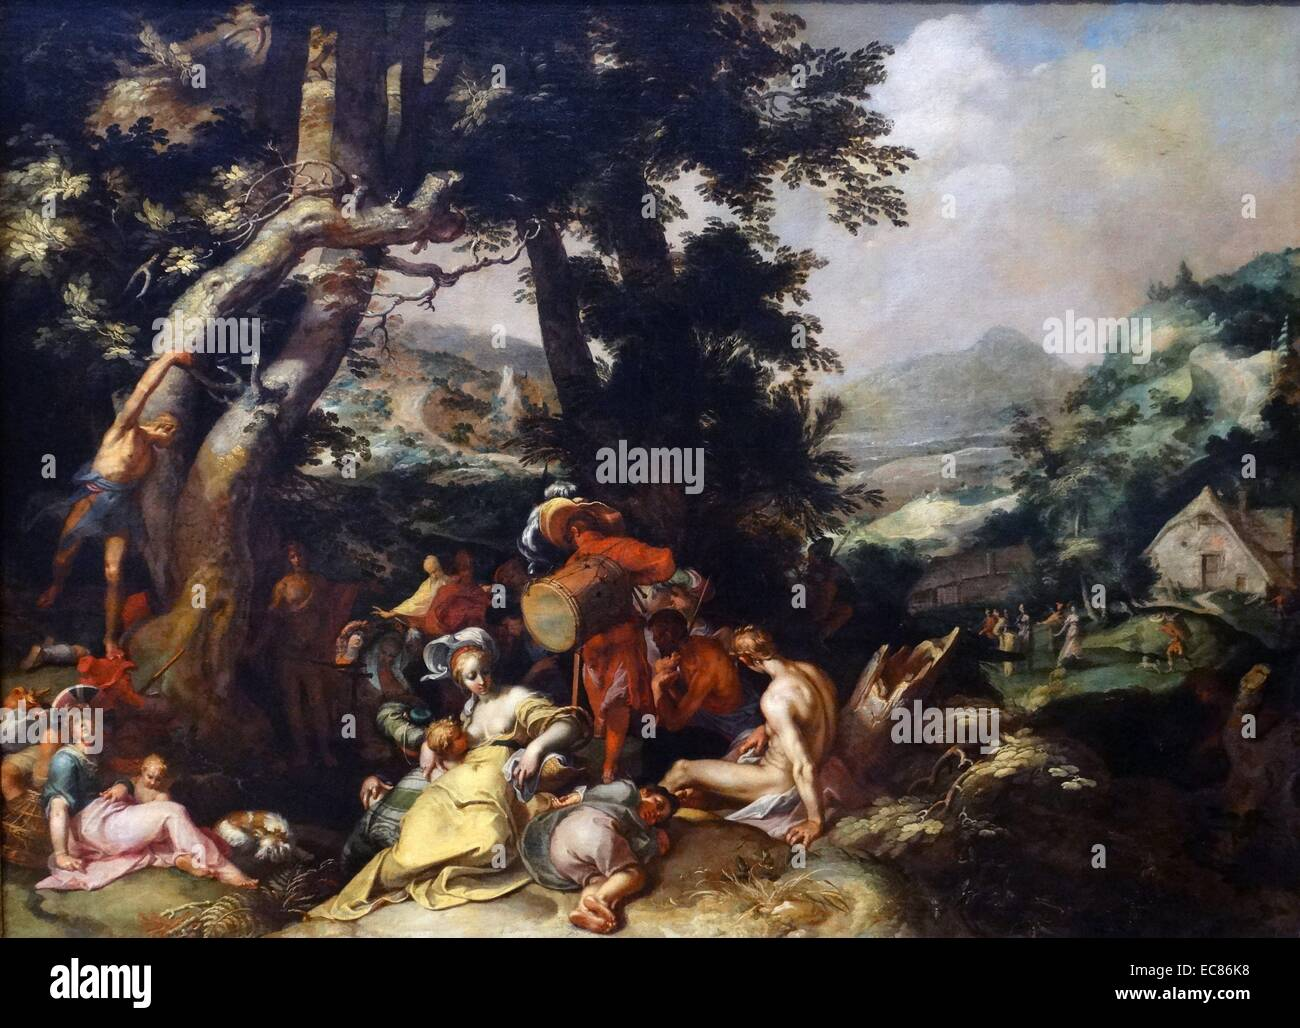 Painting titled 'The Preaching of Saint John the Baptist' - Stock Image